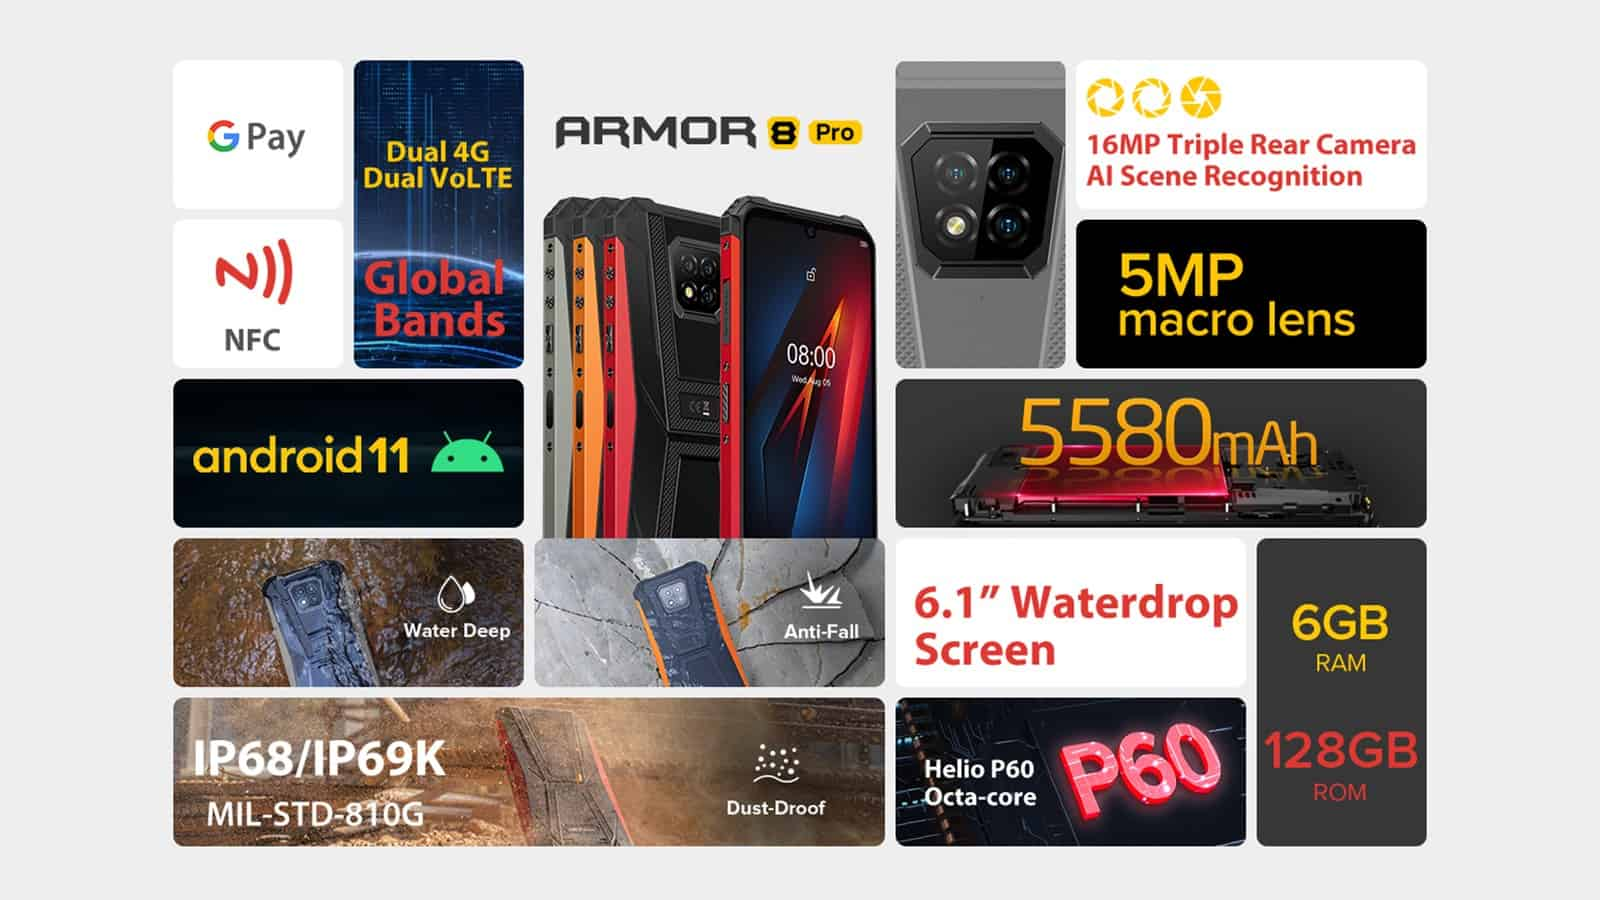 Ulefone Armor 8 Pro features